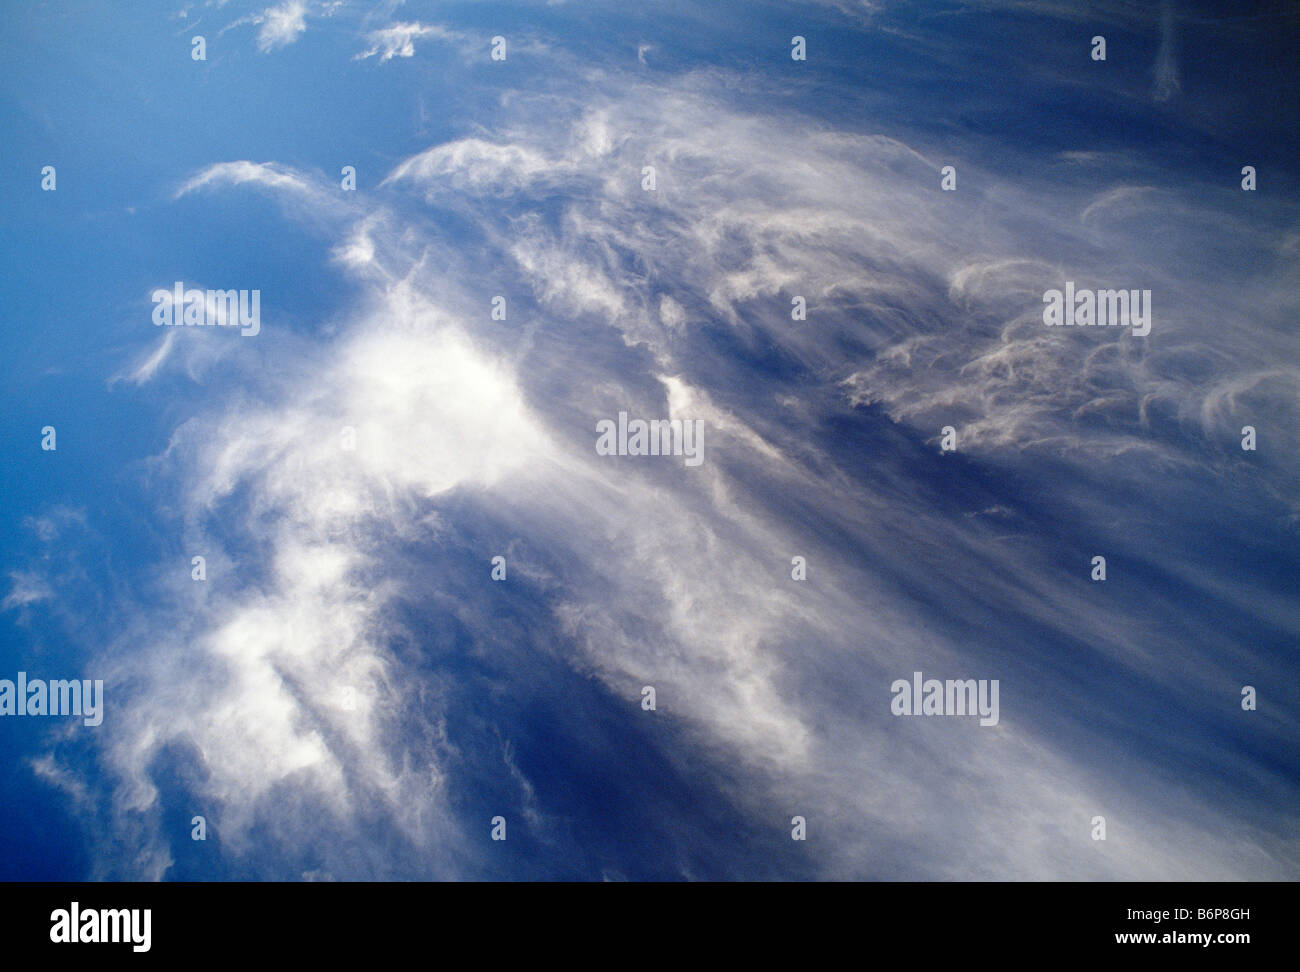 Dramatic wispy white clouds against a blue sky - Stock Image